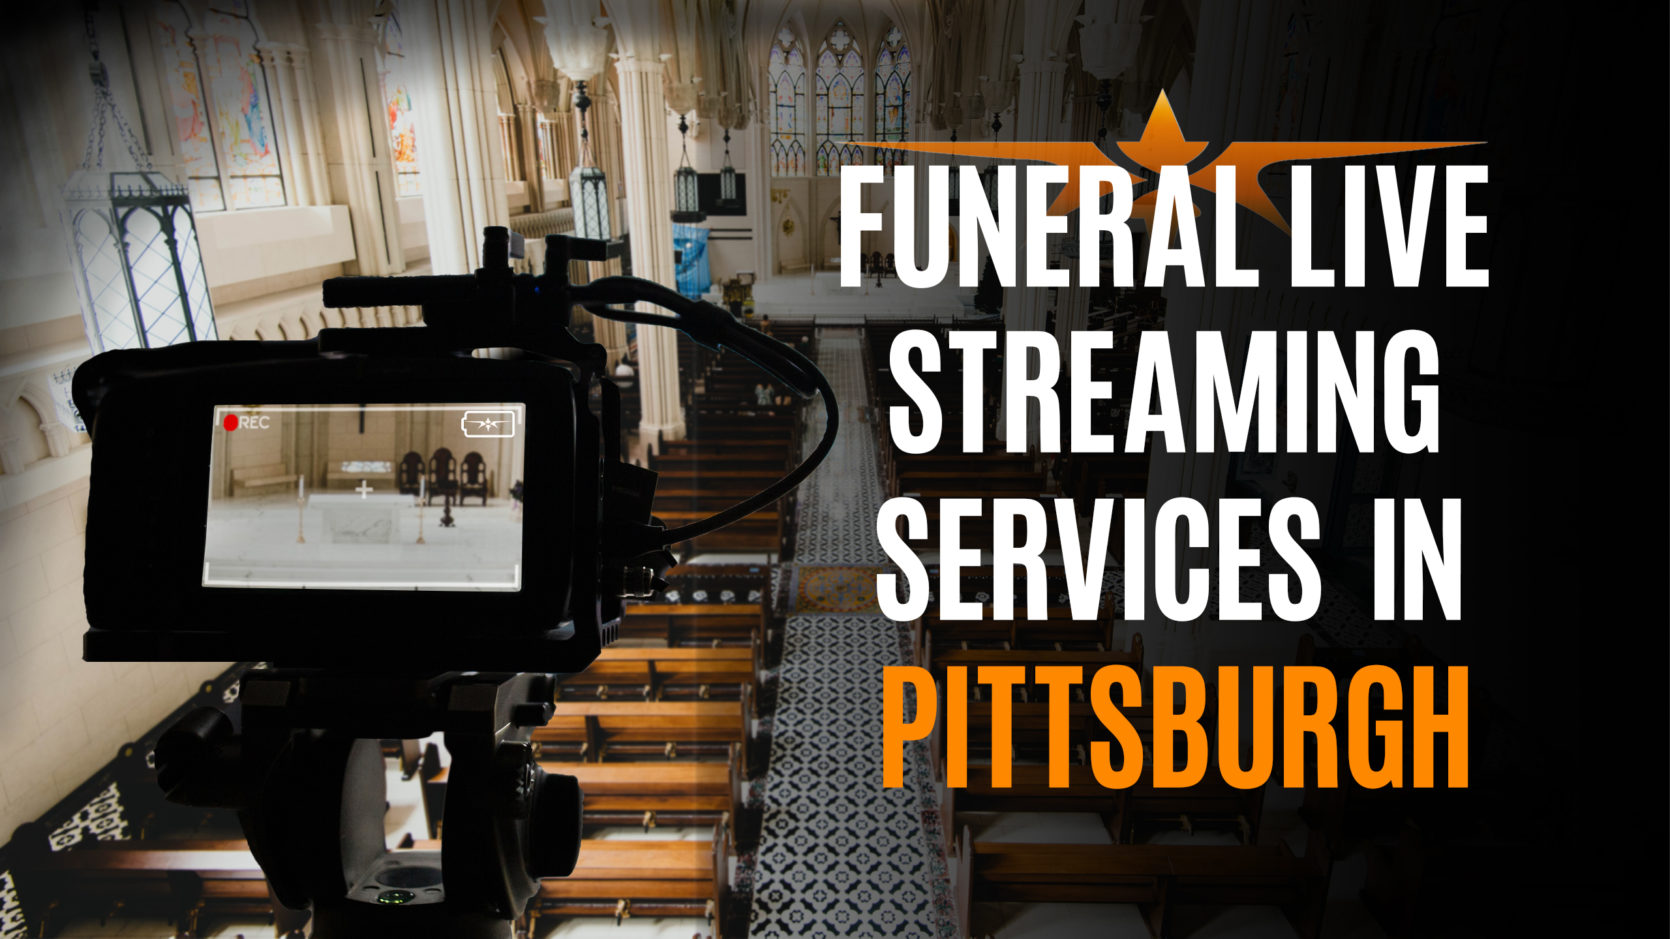 Funeral Live Streaming Services in Pittsburgh